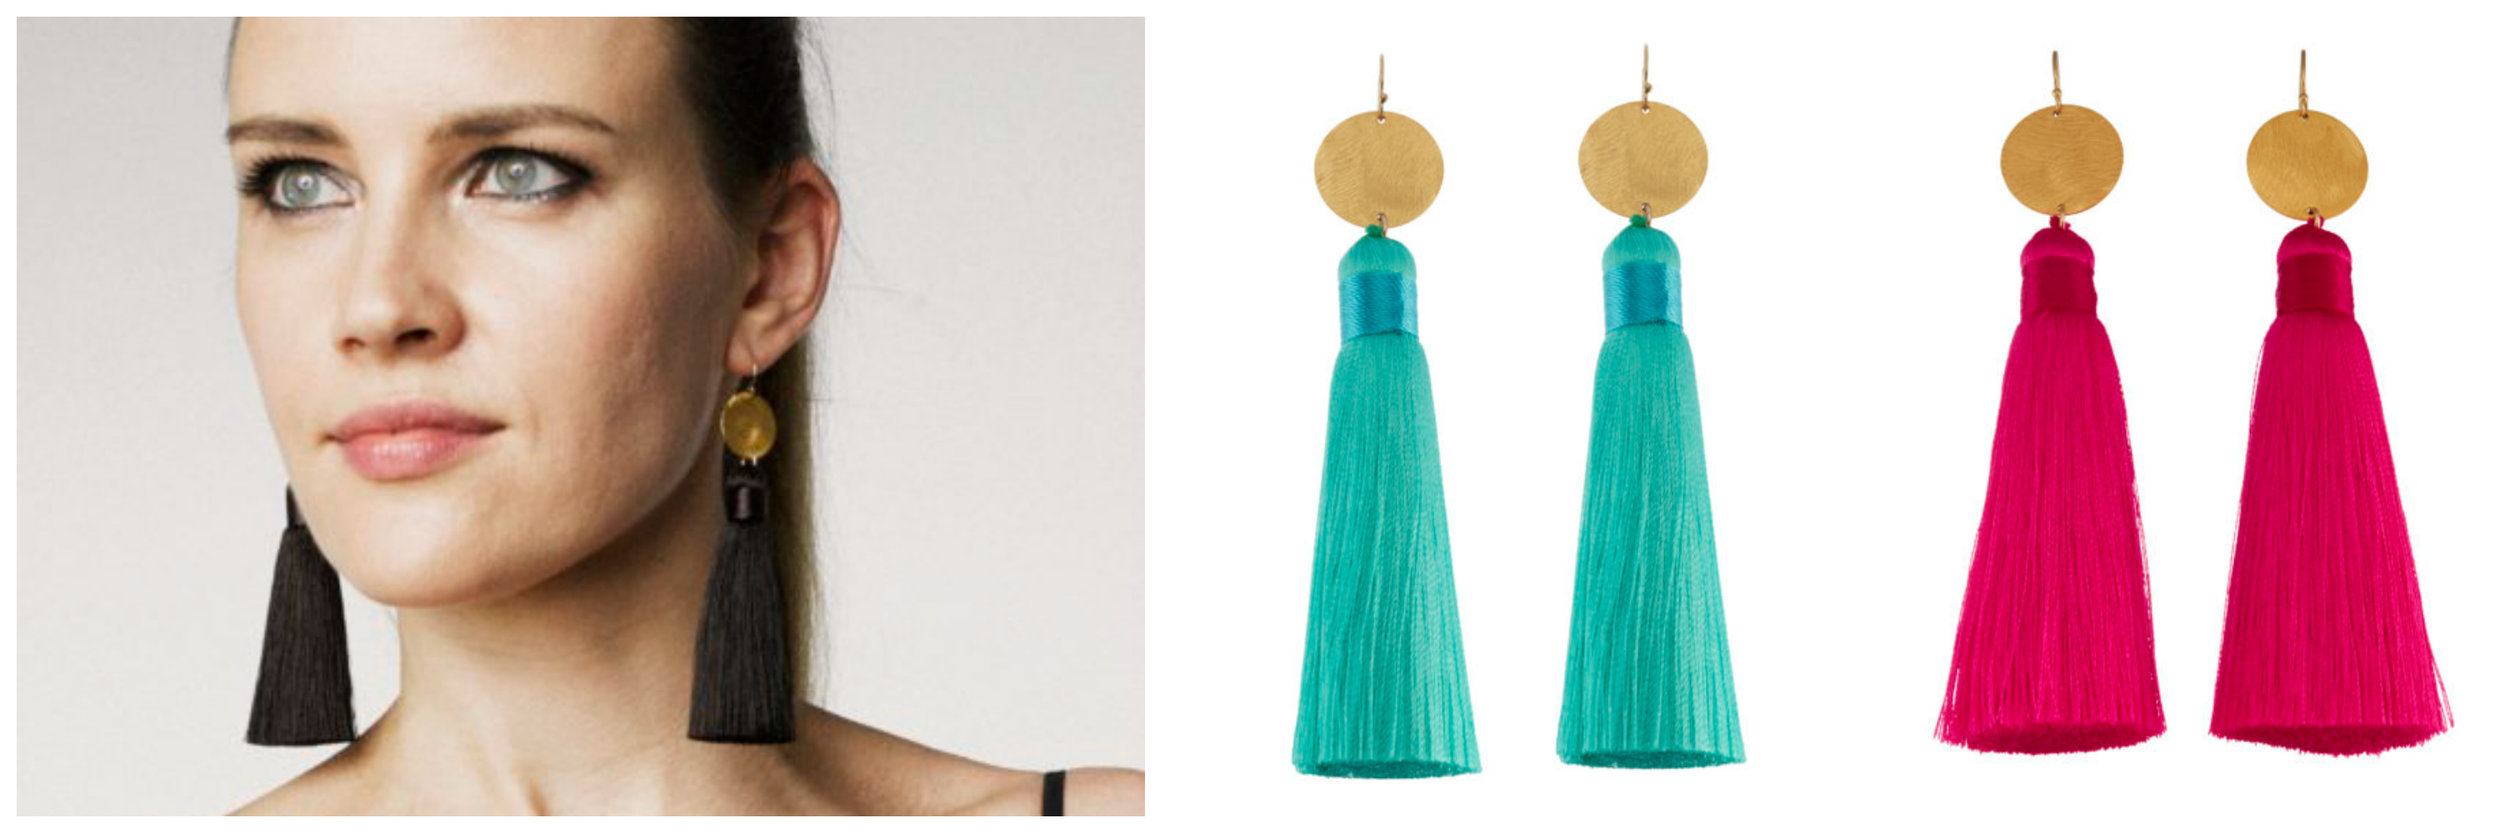 Tassels extremely in-style this spring and fall season. Bring contemporary style into your outfit in this relaxed look by pairing fun accessories with your everyday wardrobe.